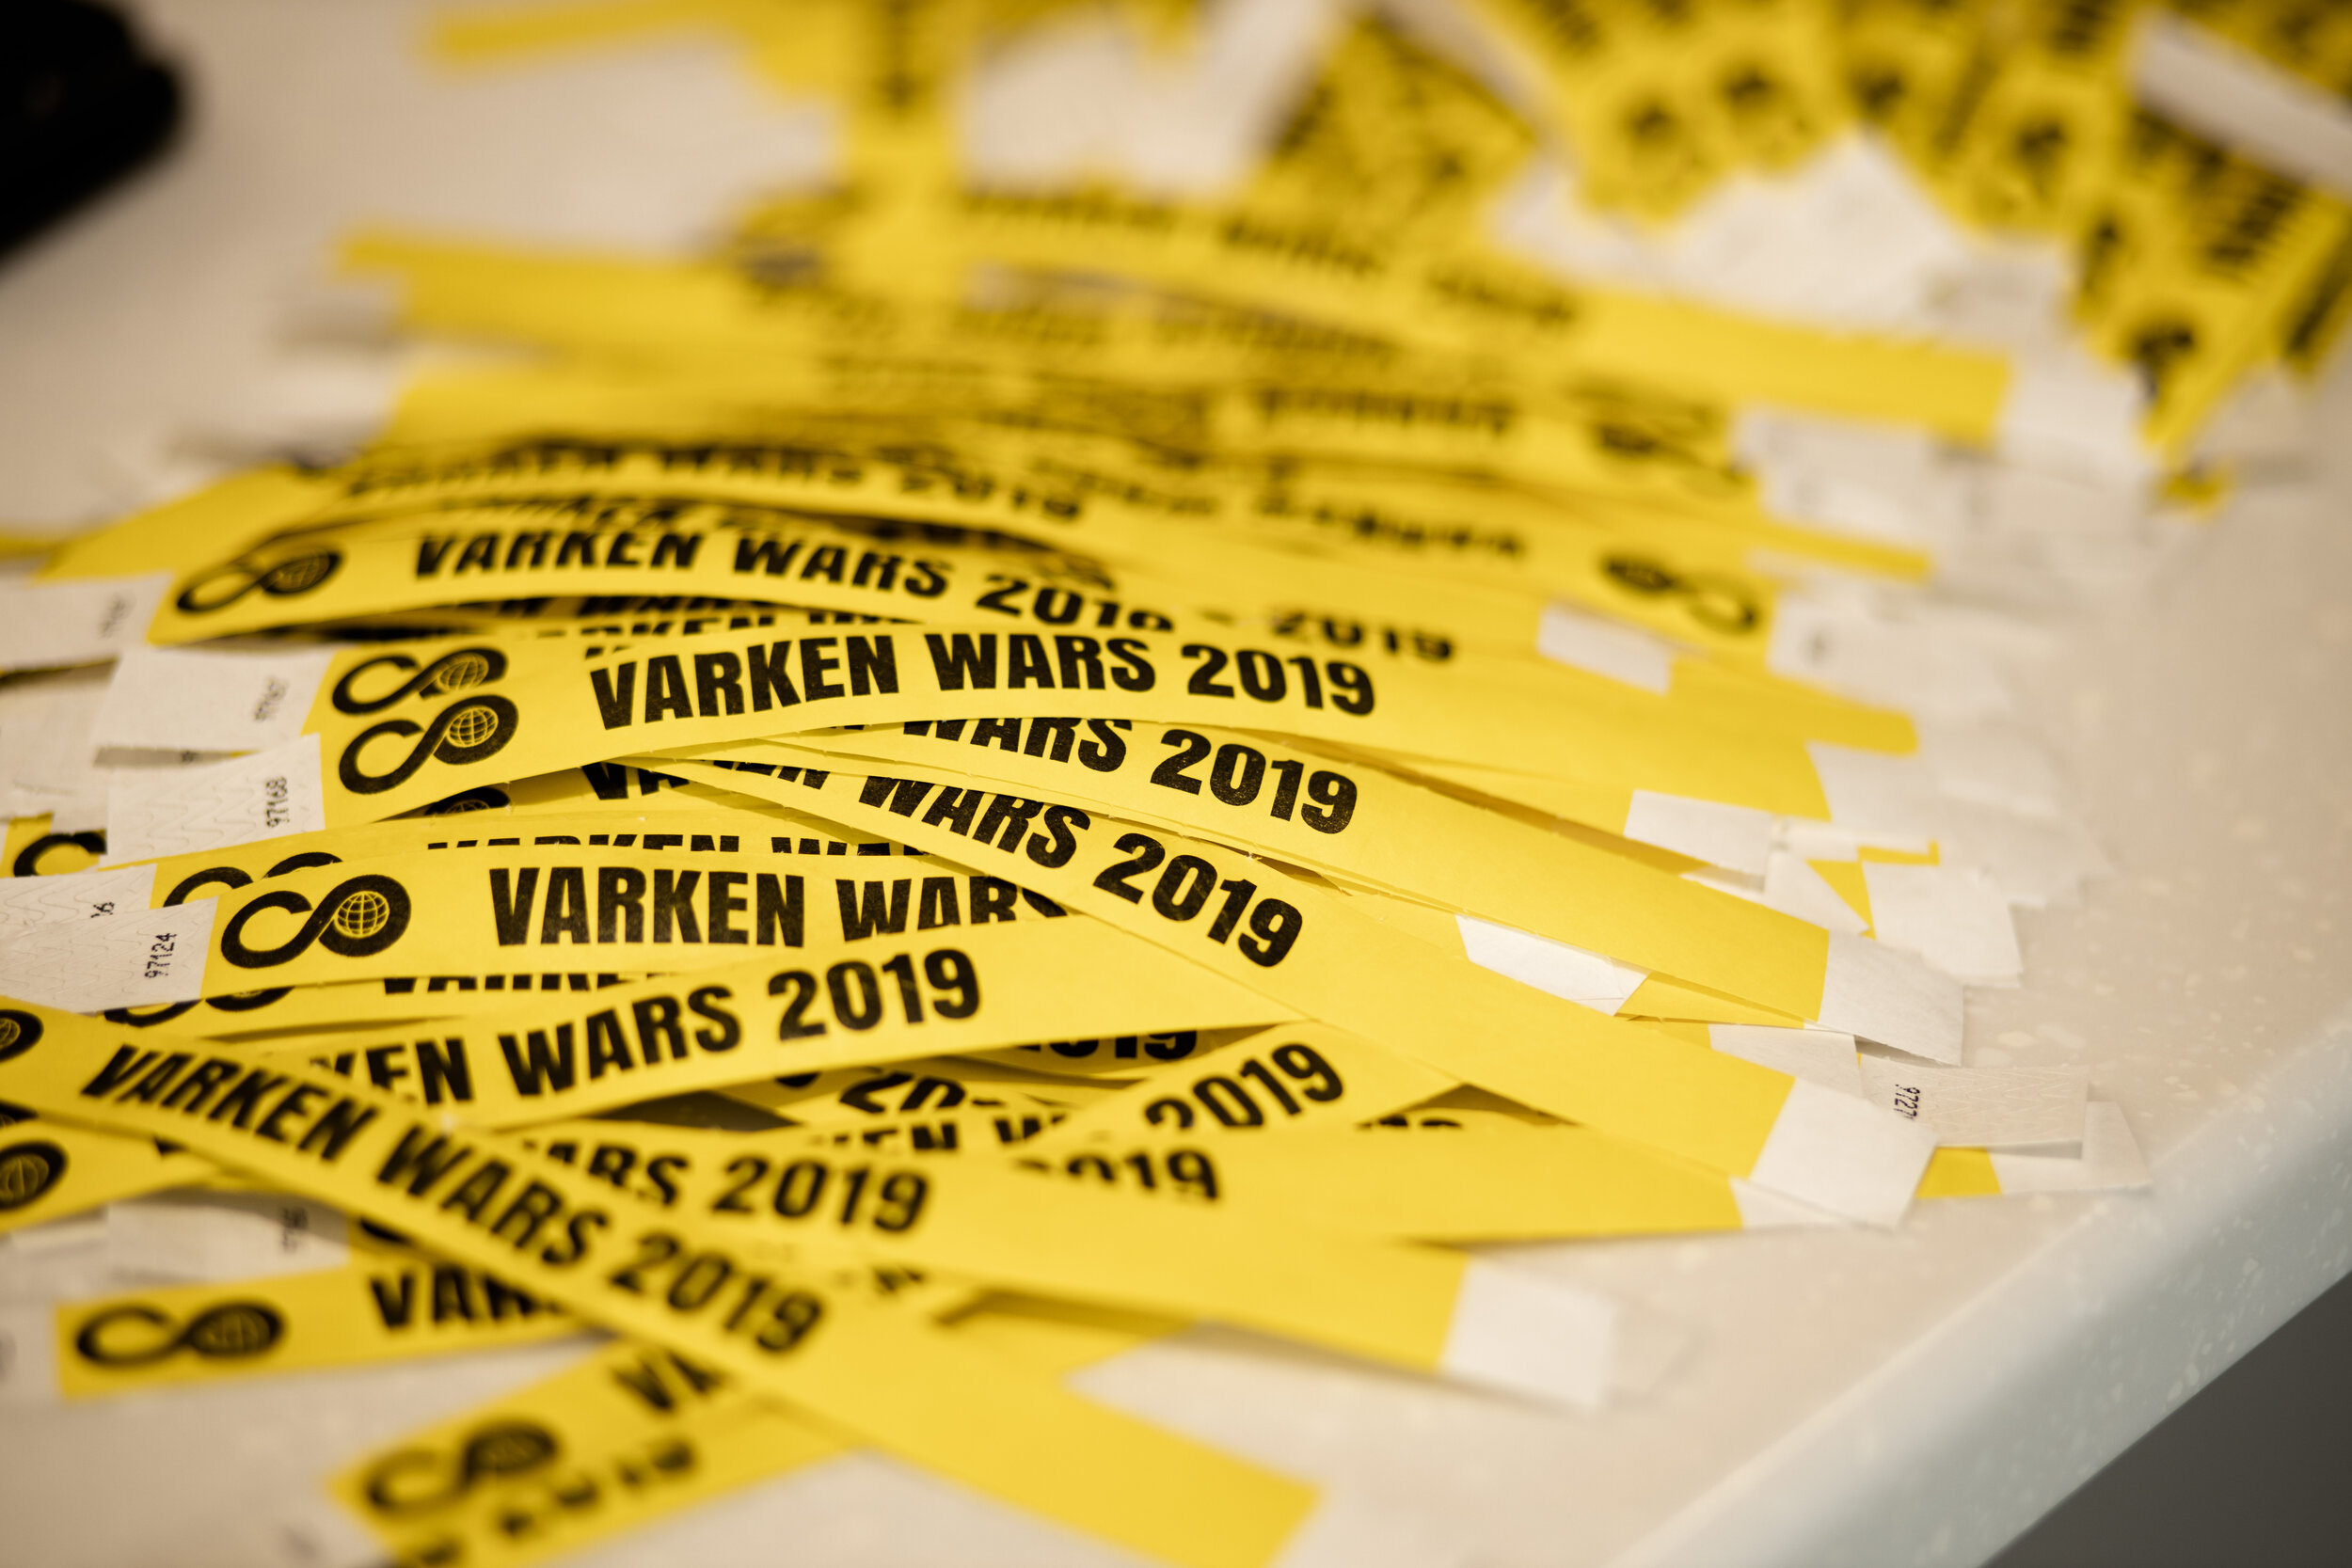 Varken Wars '19 : Day 1 - Before all the paintball… this happensPhotos by Reid McCandless